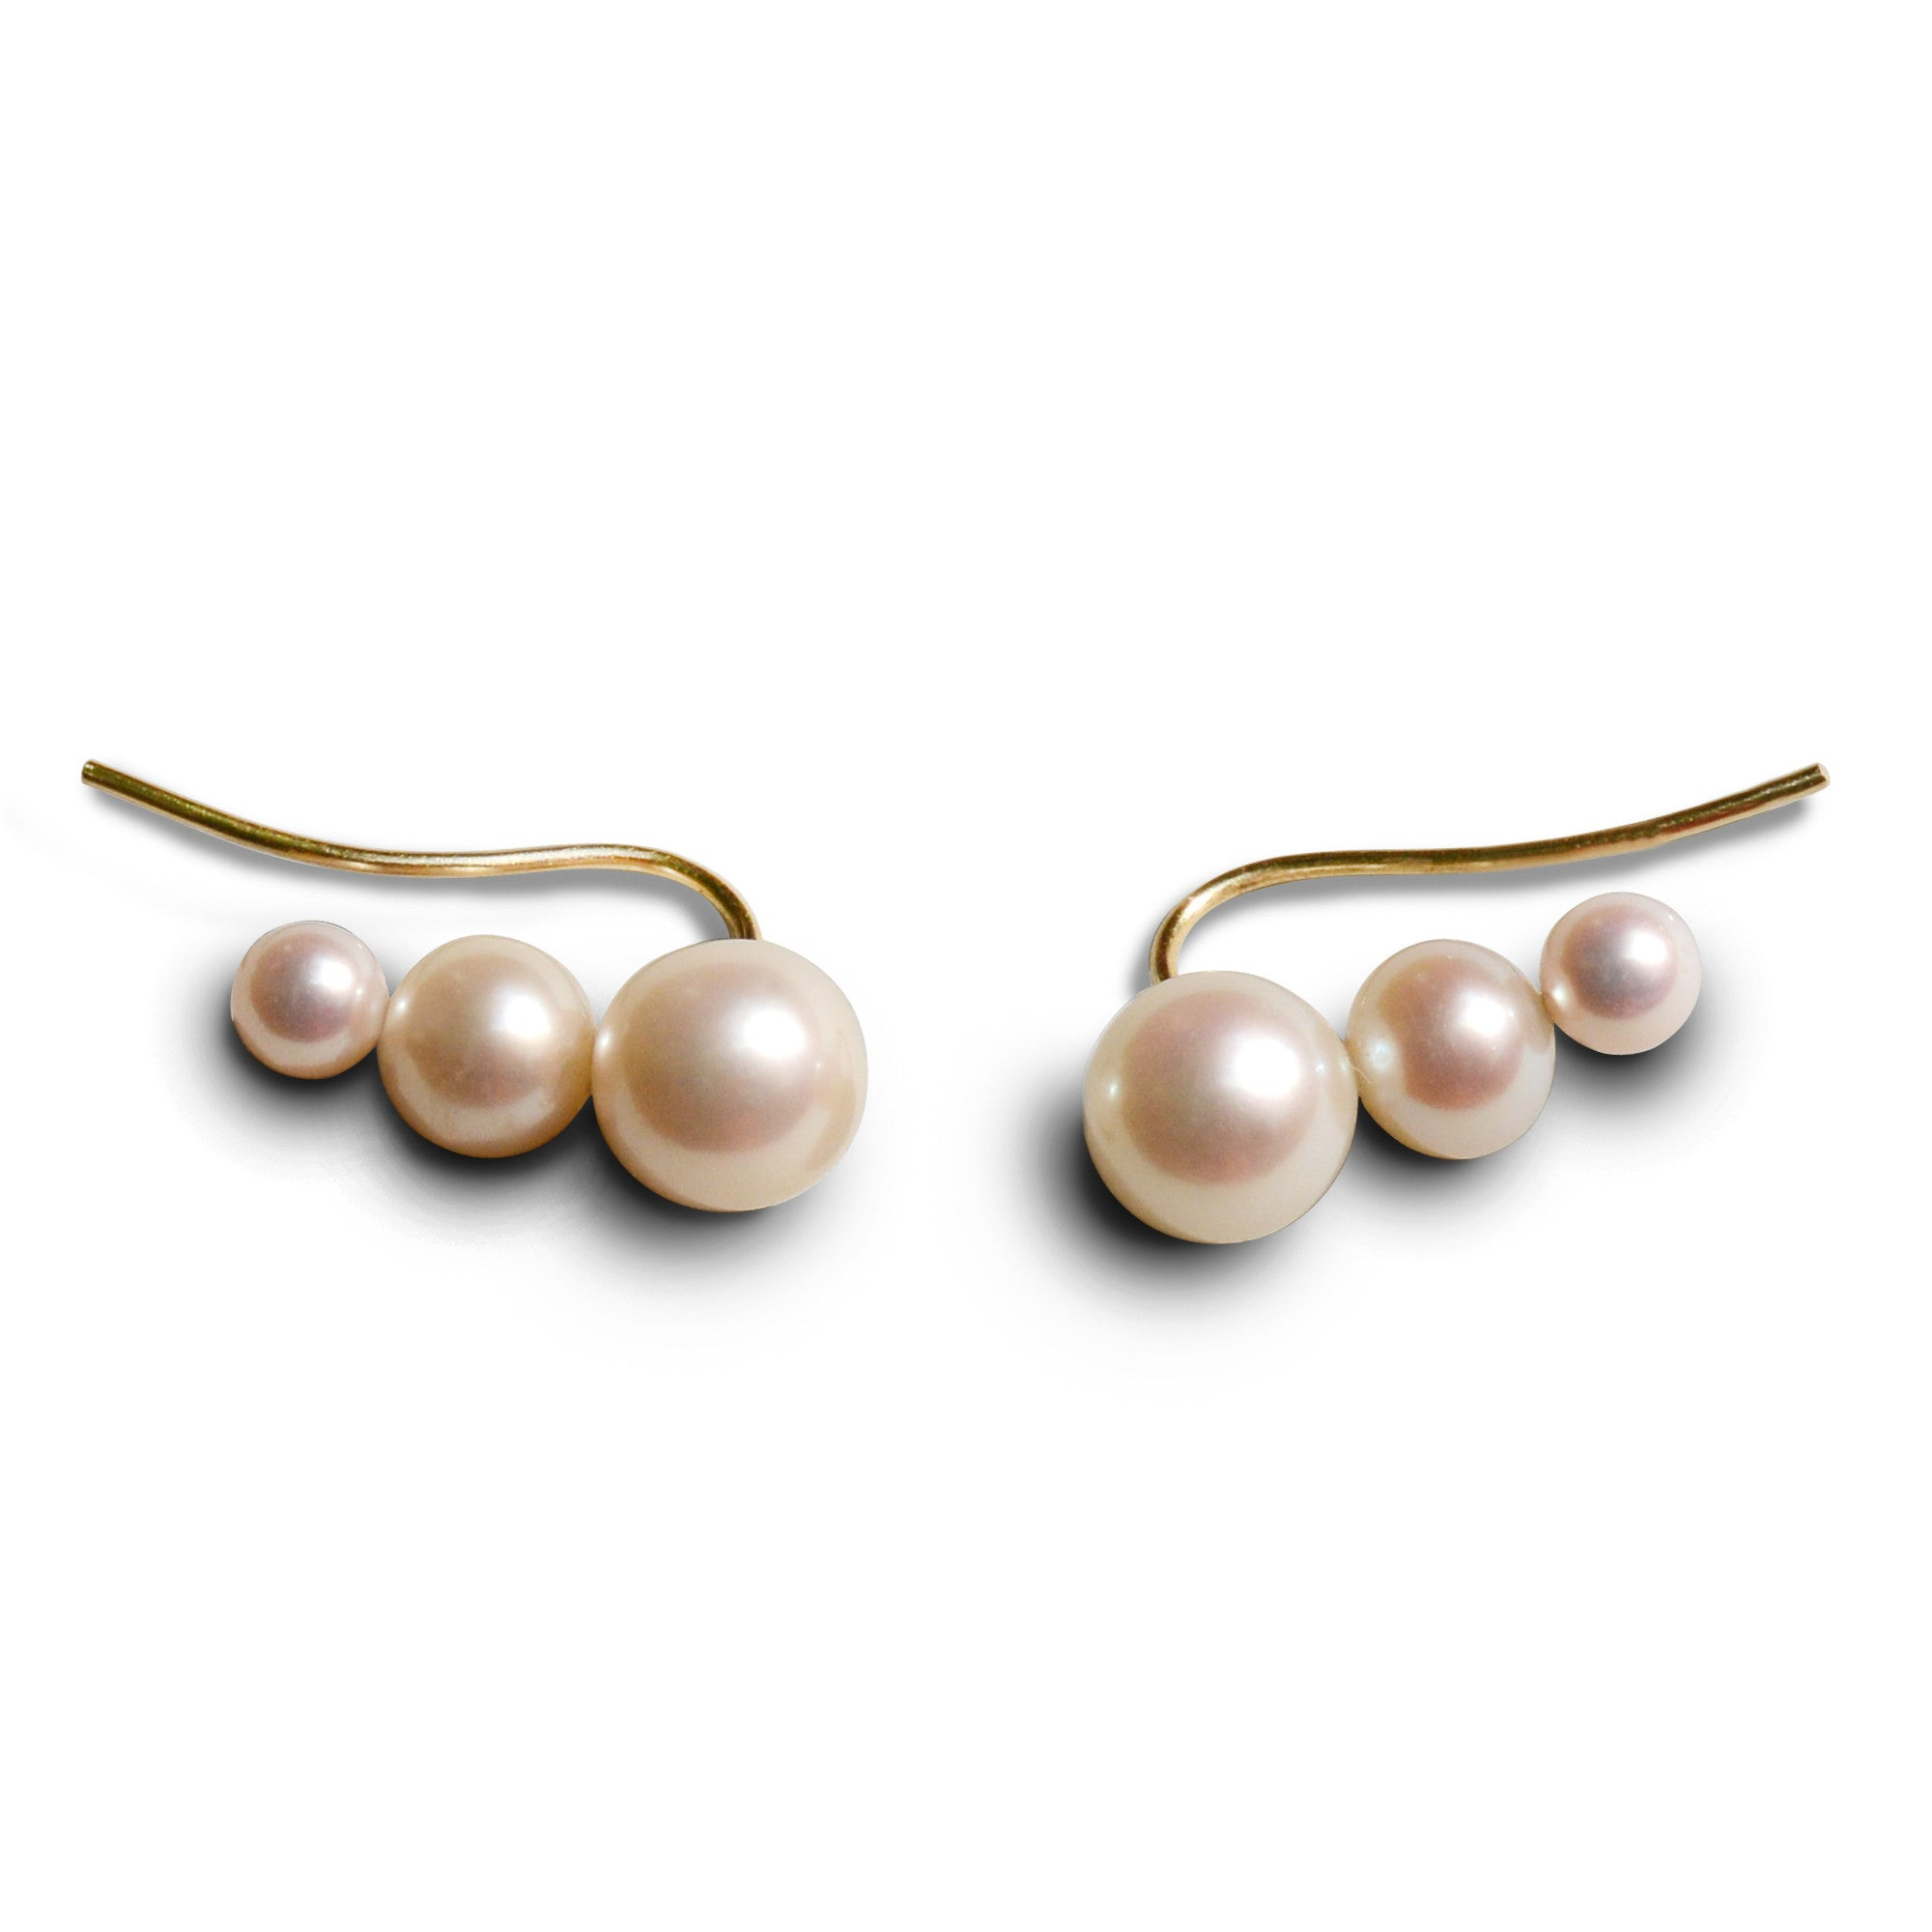 SASKIA DIEZ - PEARL EARRINGS